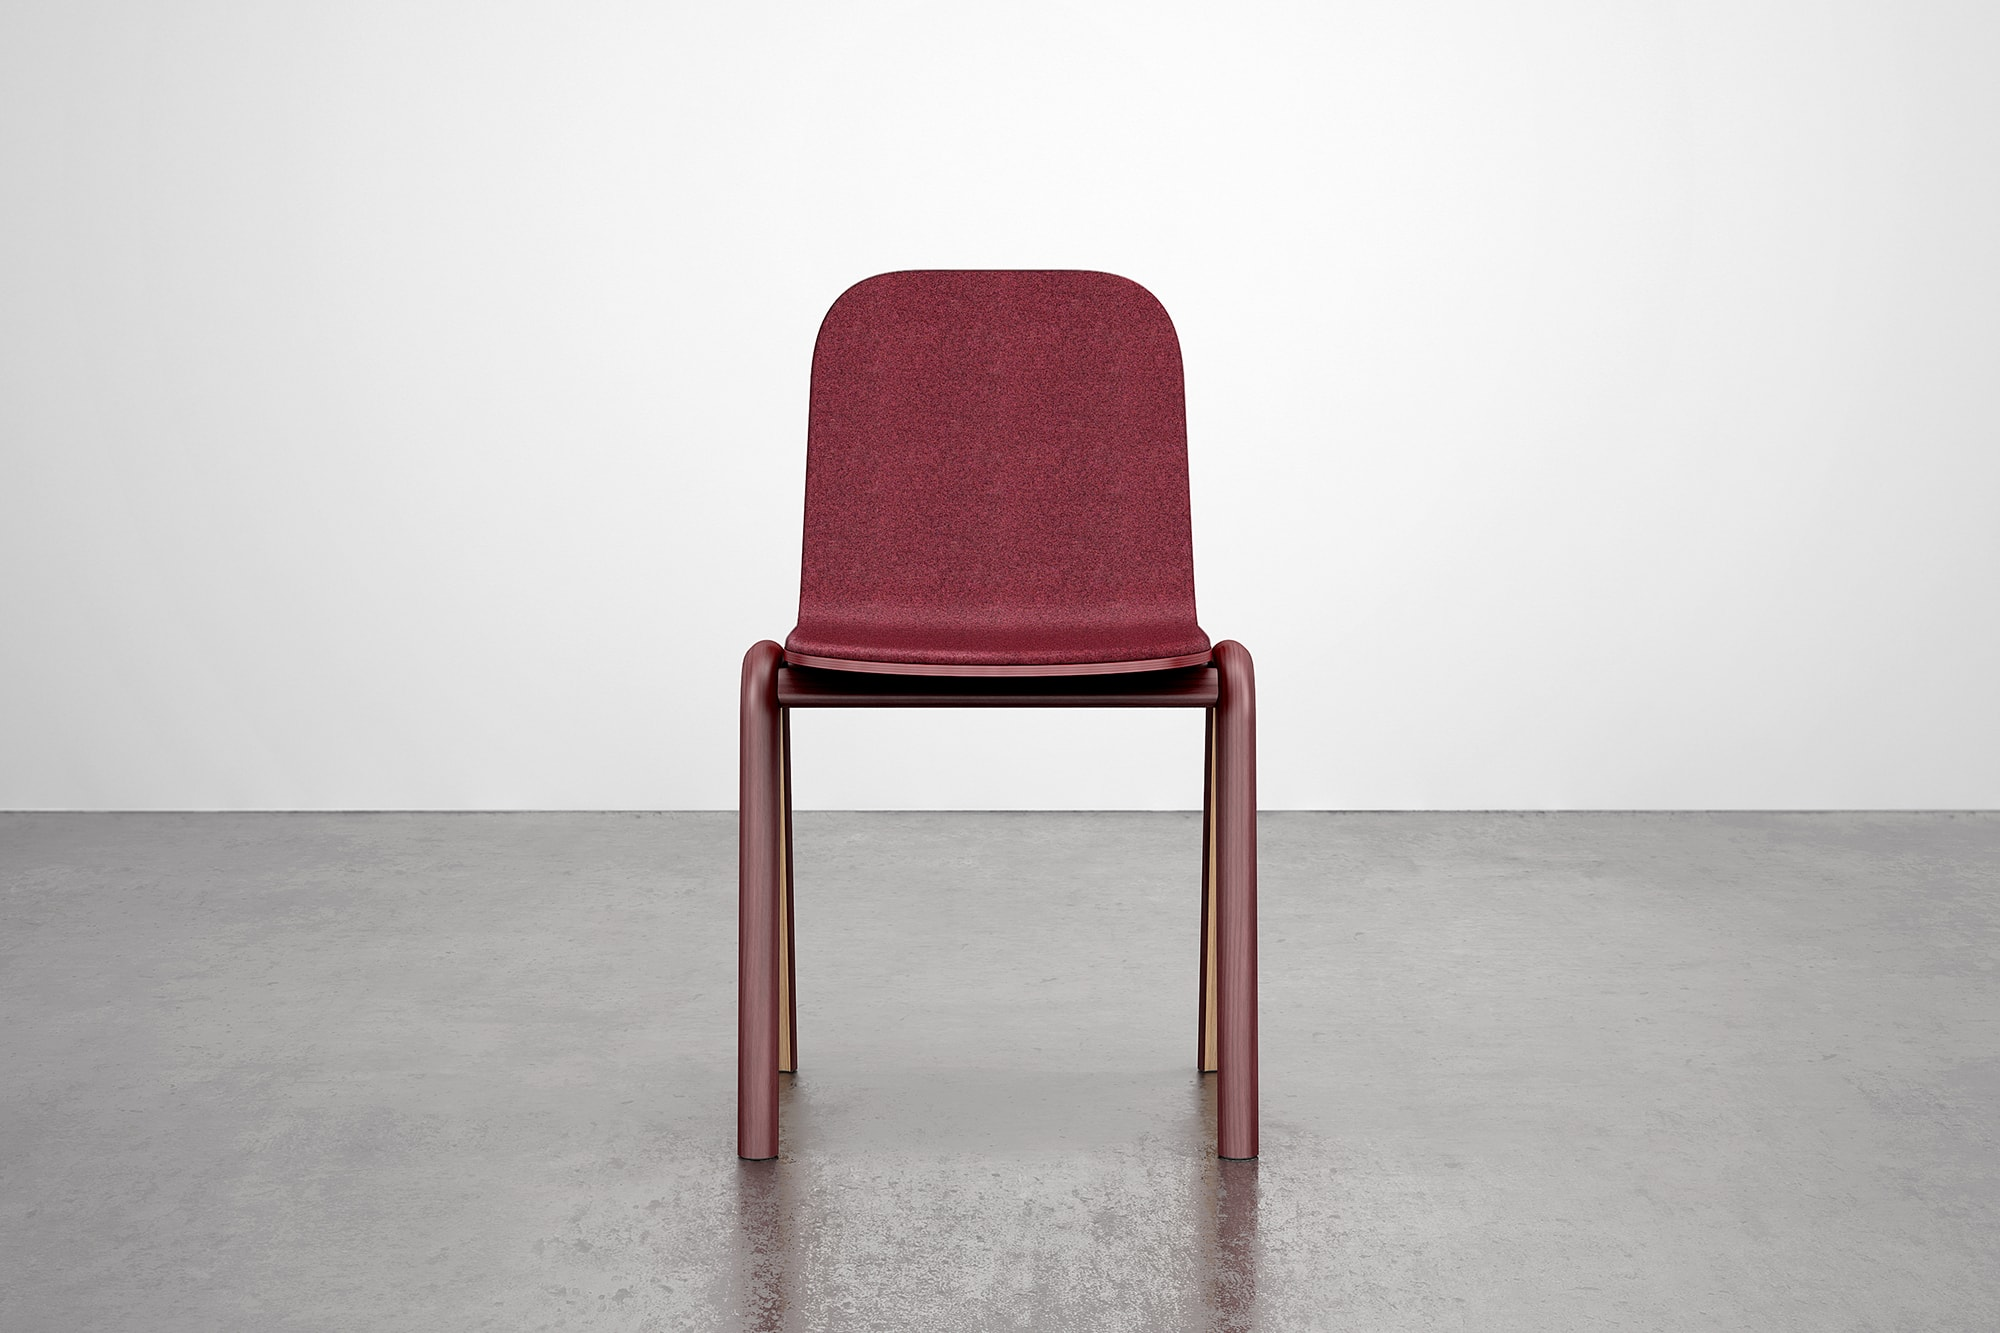 Front view of Burgundy Chair with cushion. The chair is made using steam bent wood.